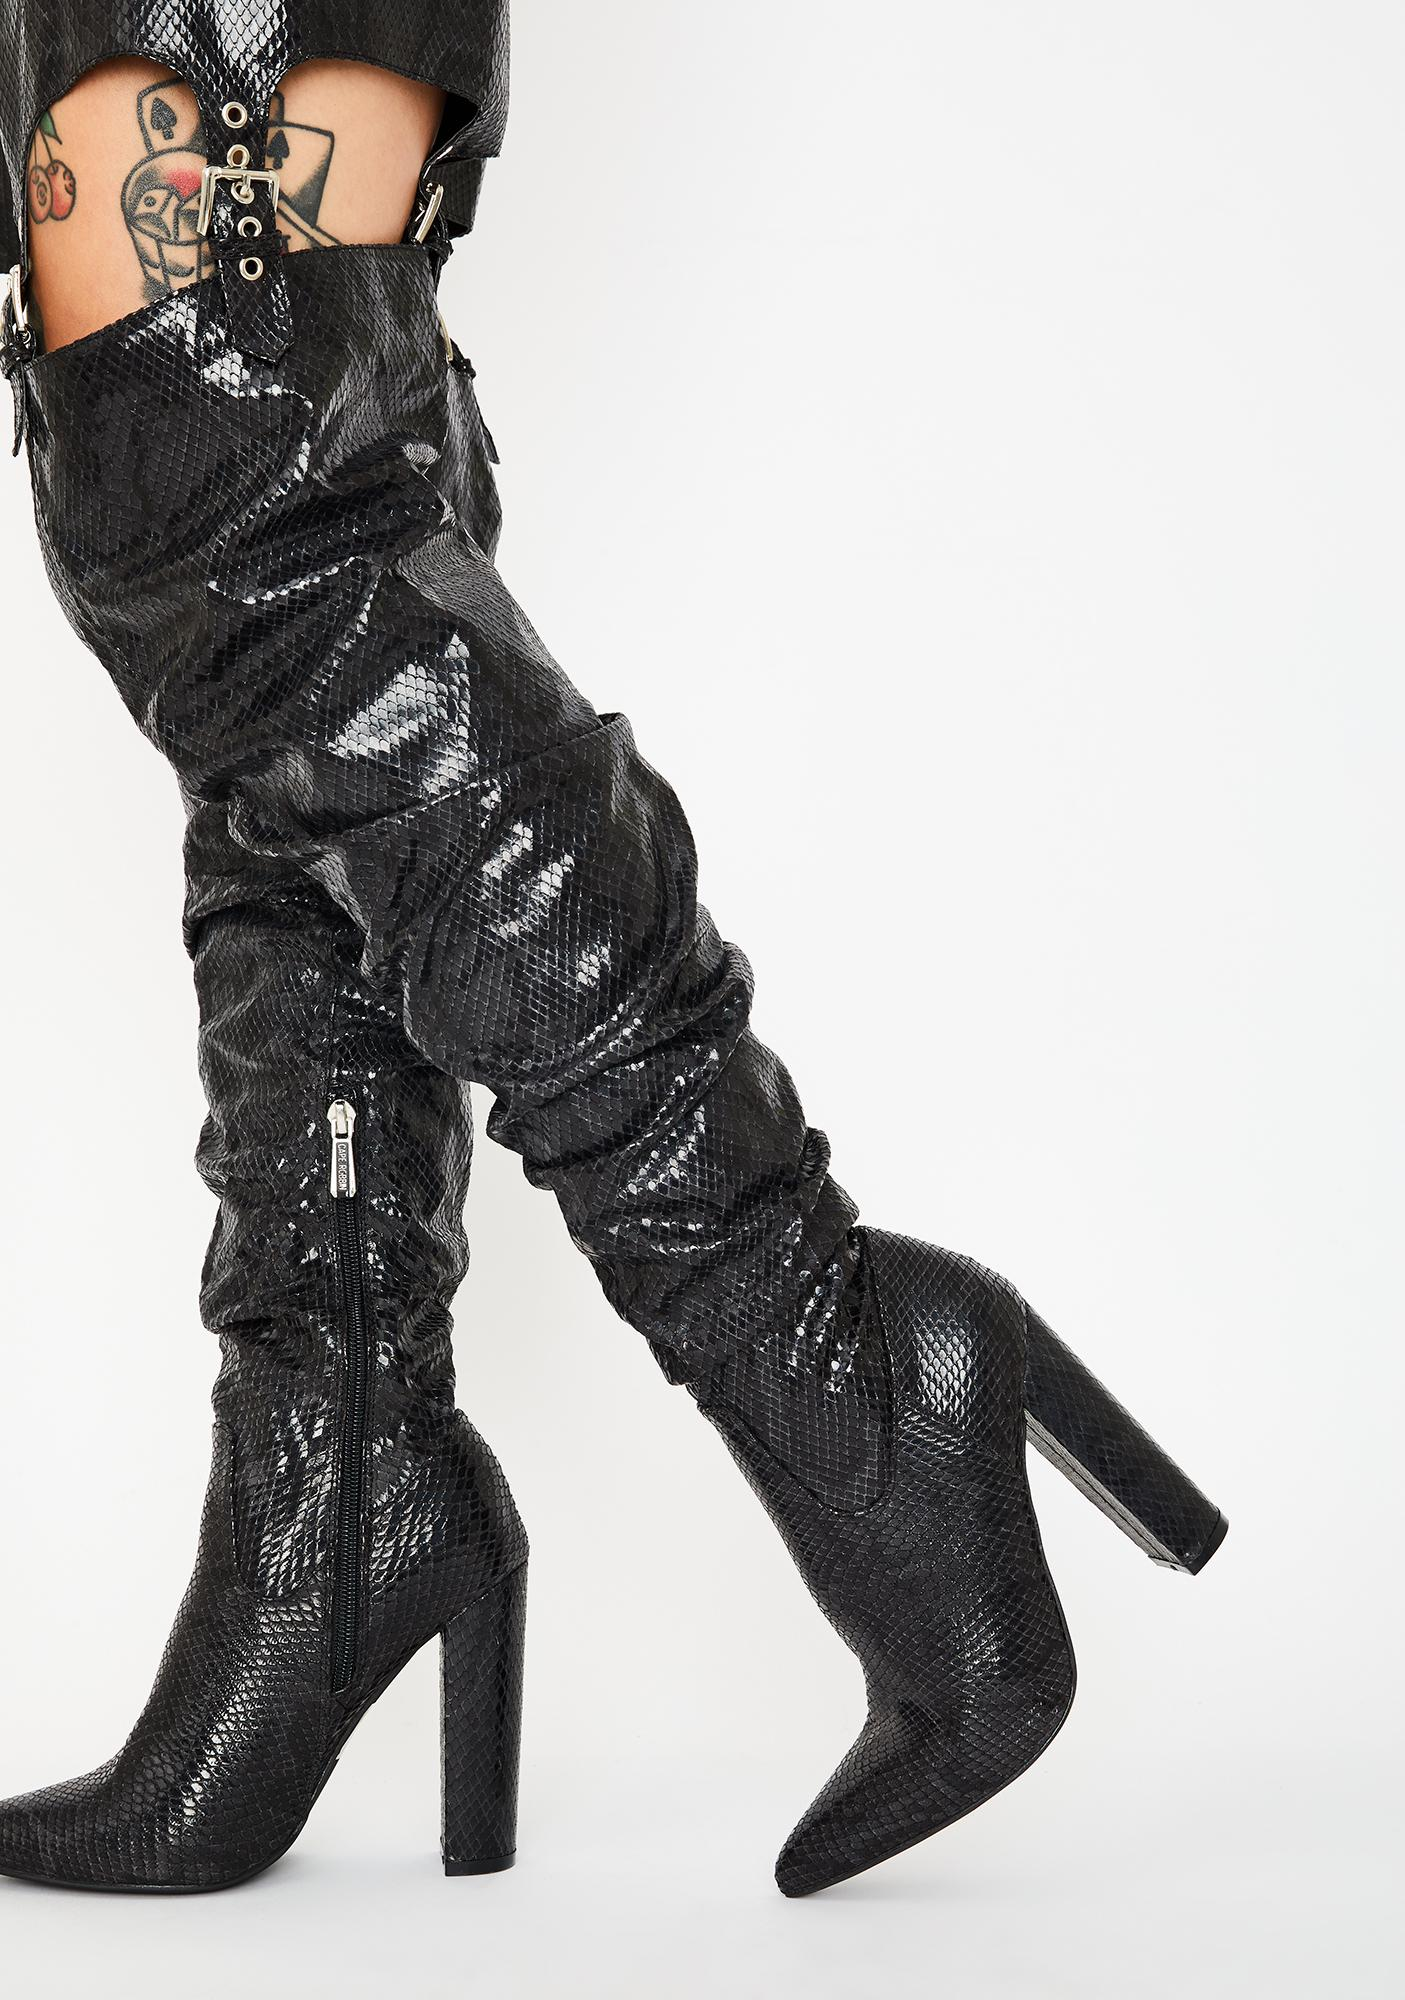 Night Sexy Thing Chap Boots